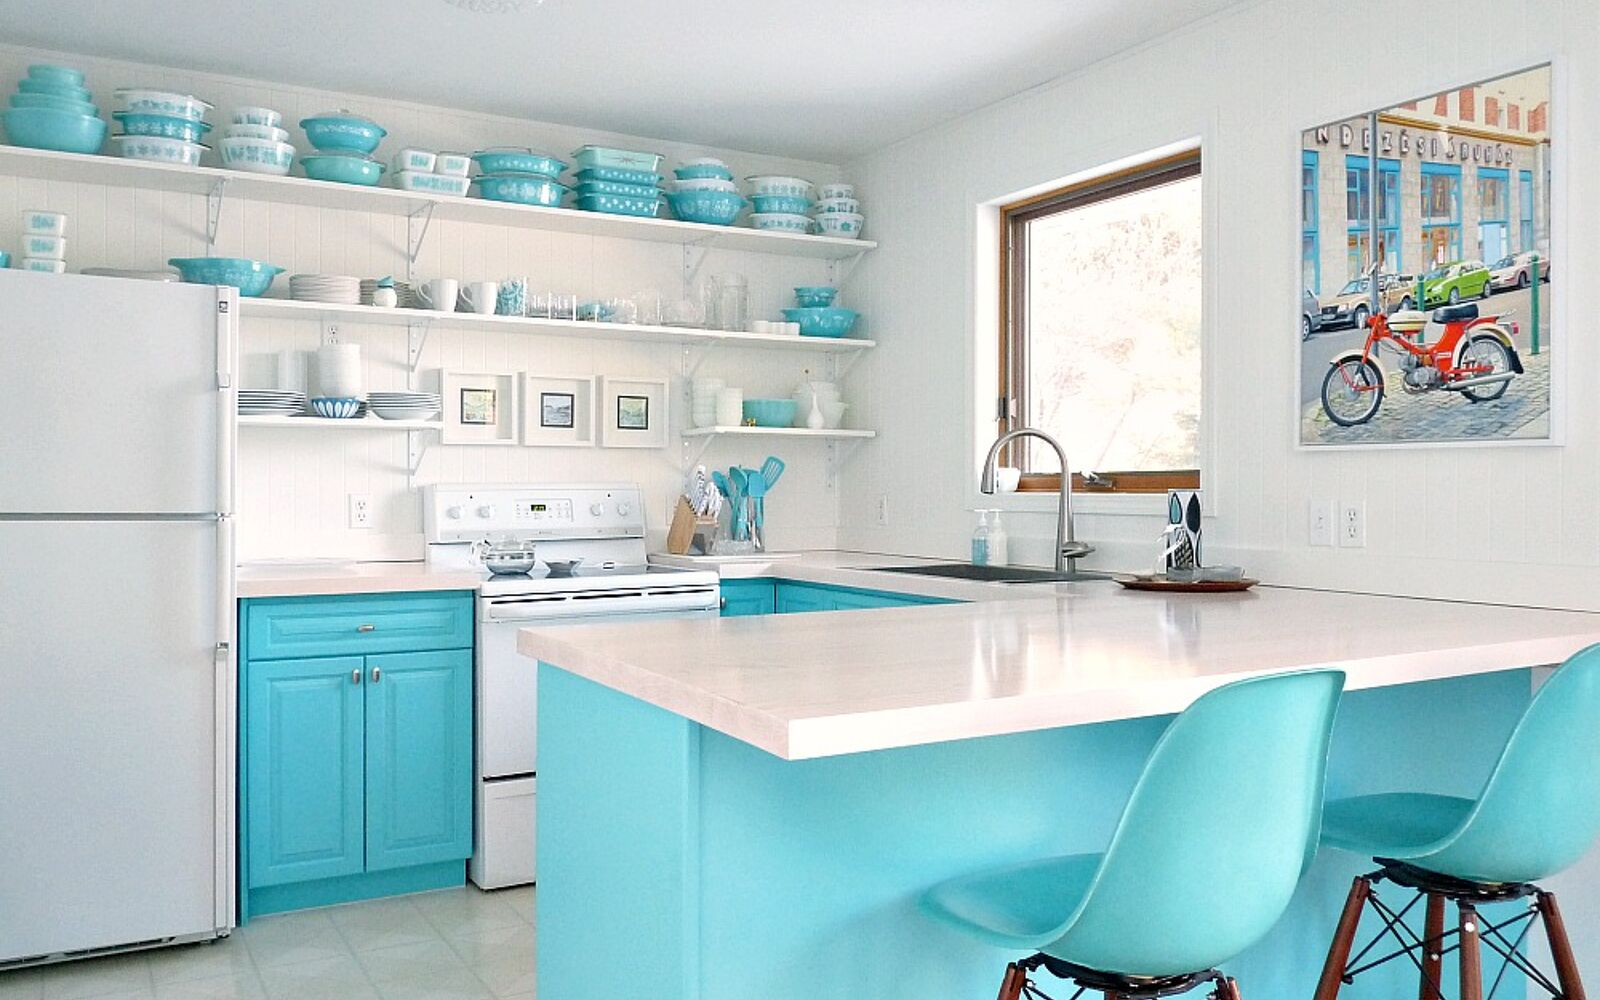 s 31 update ideas to make your kitchen look fabulous, Take off the cabinet doors for open shelving